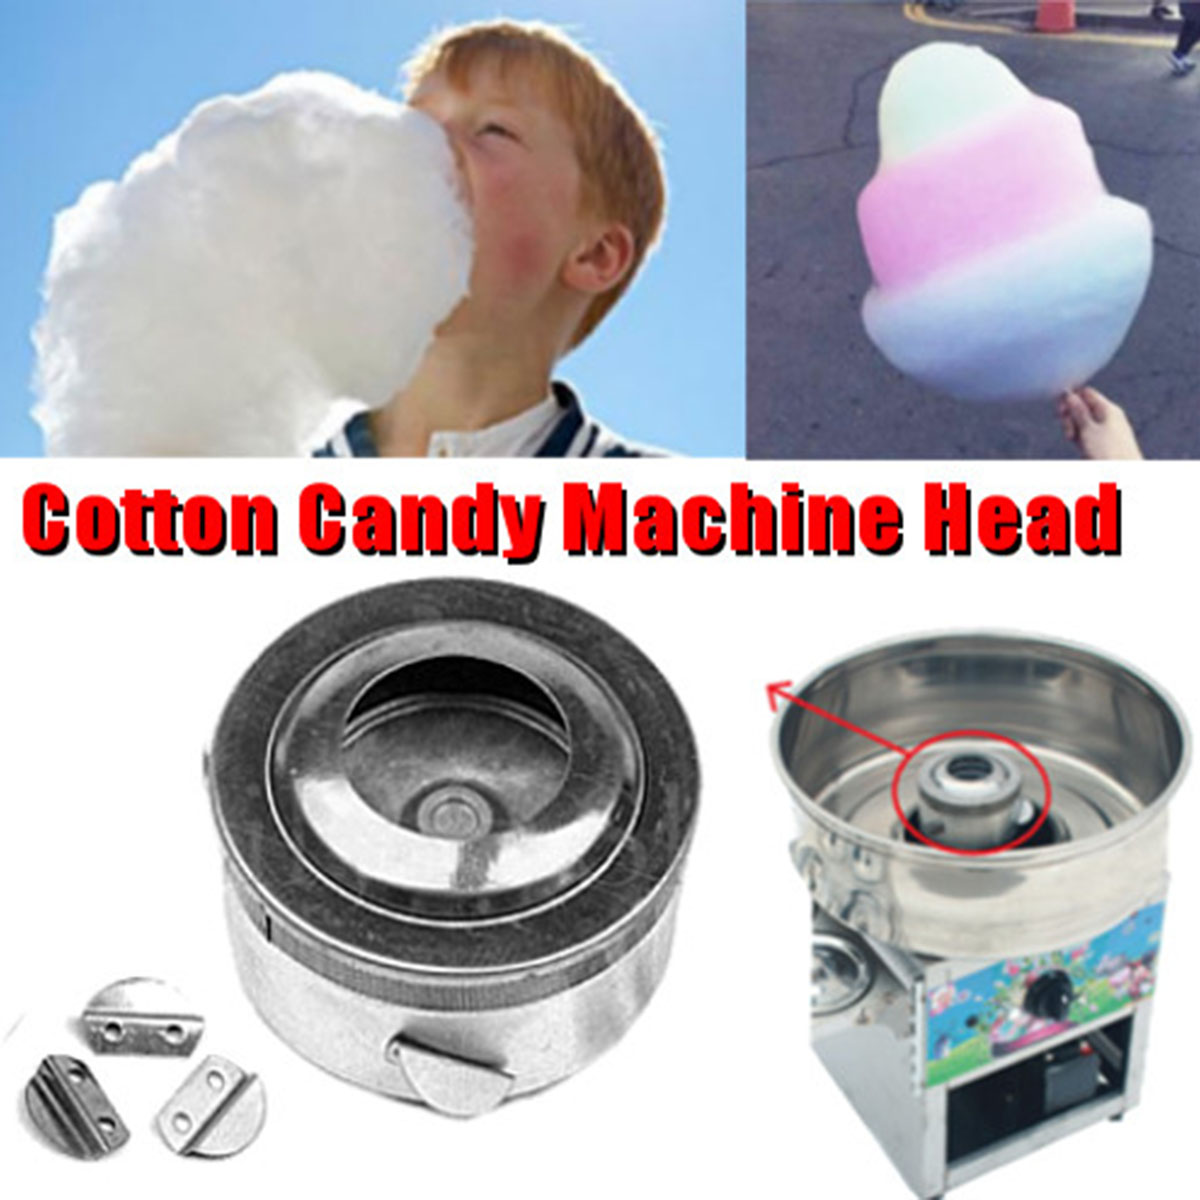 Cotton Candy Machine Head Machine Sugar Extractor Sugar Head Cotton Candy  Machine Accessories